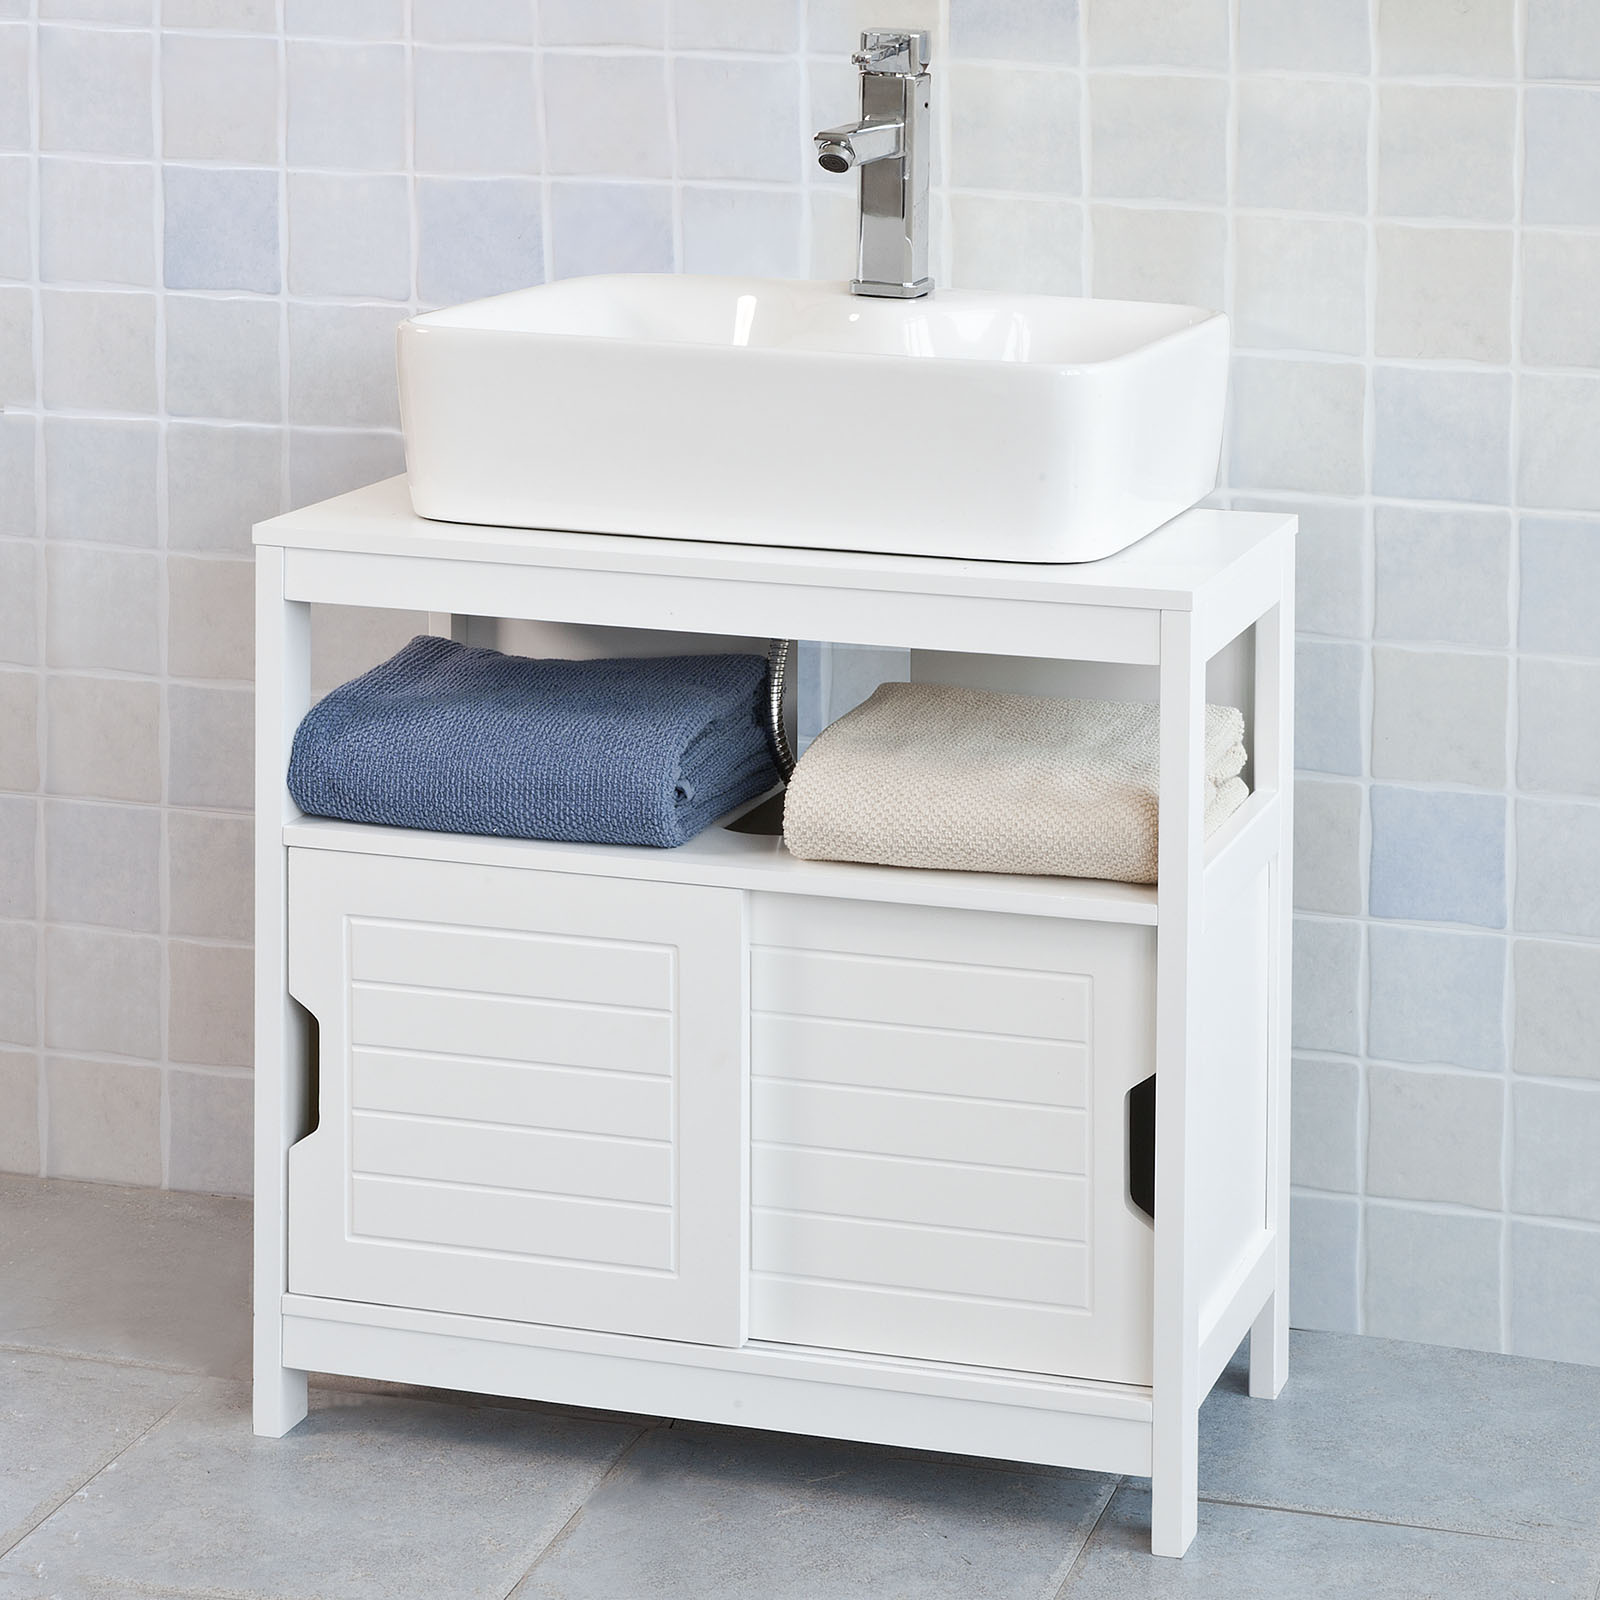 White Under Sink Bathroom Storage Cabinet haotian frg128-w, white under sink bathroom storage cabinet with